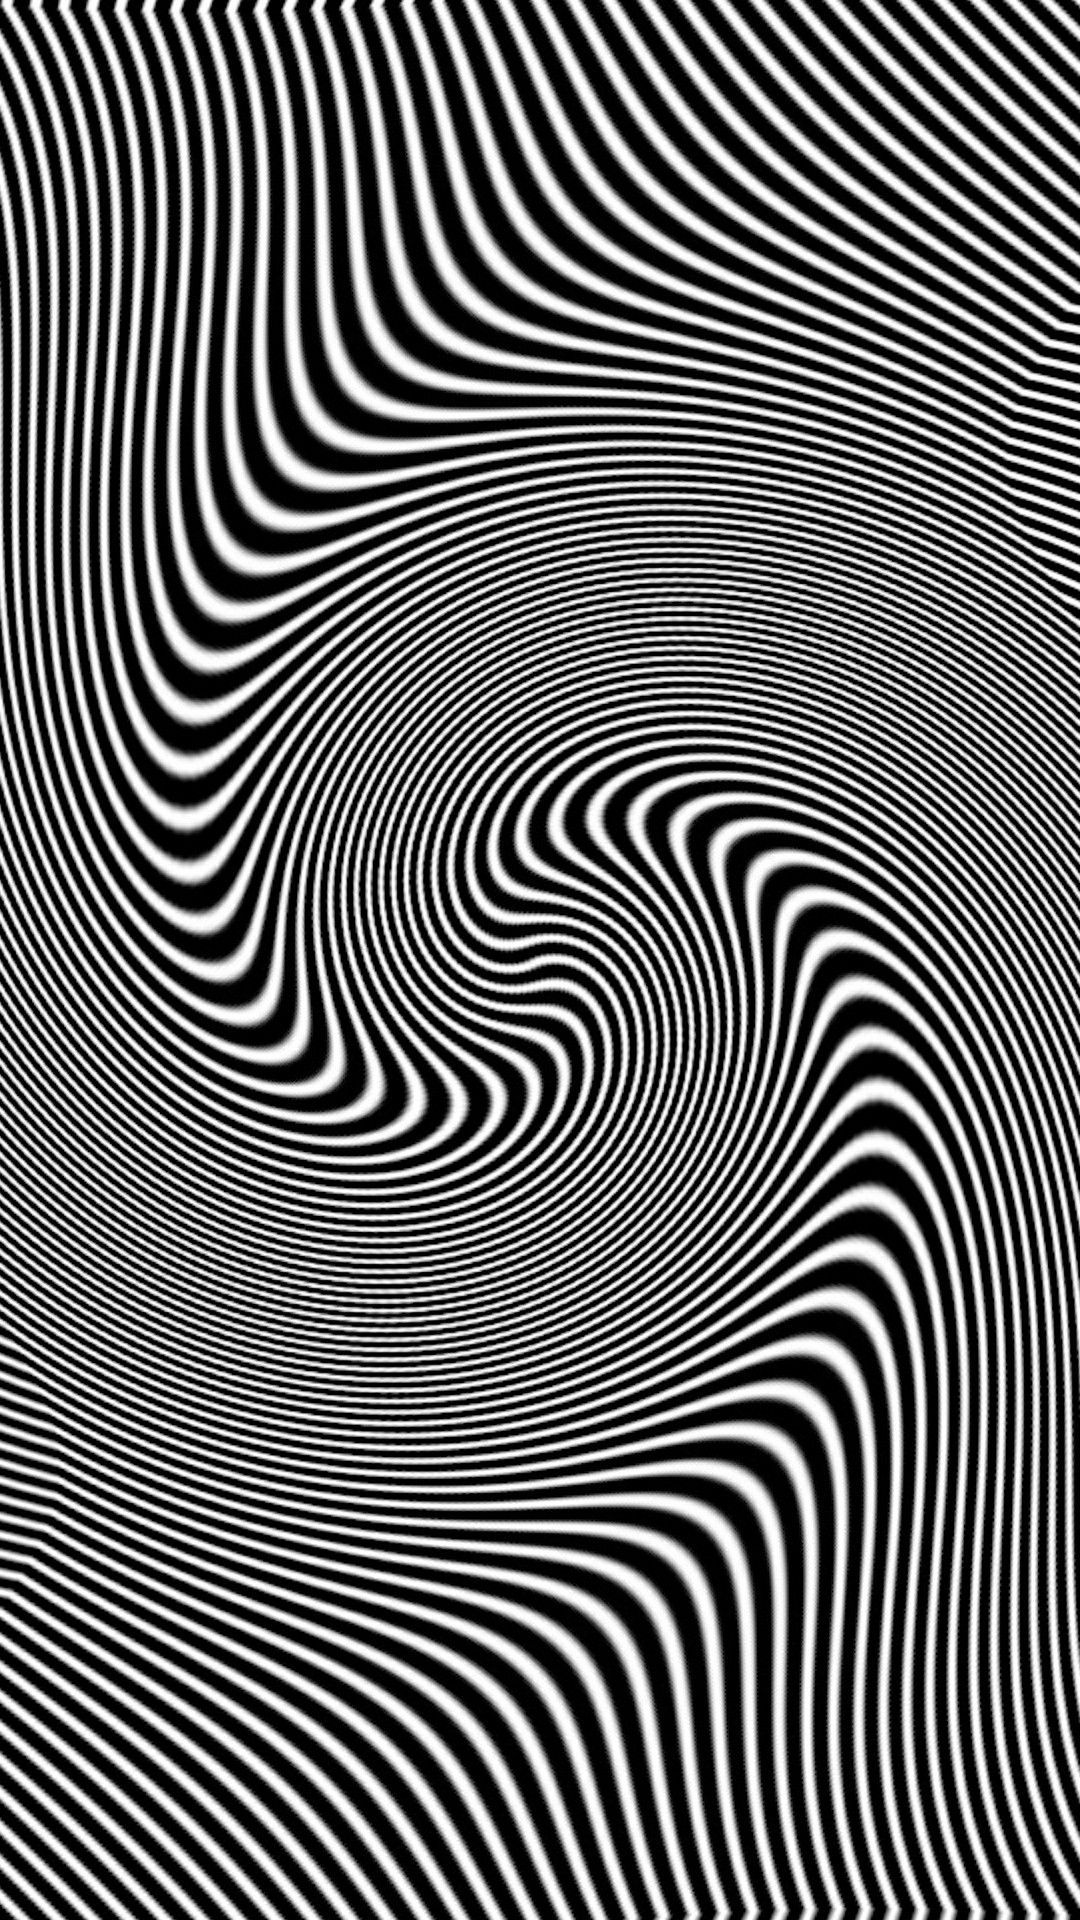 3D Illusion Phone Wallpapers - Top Free ...